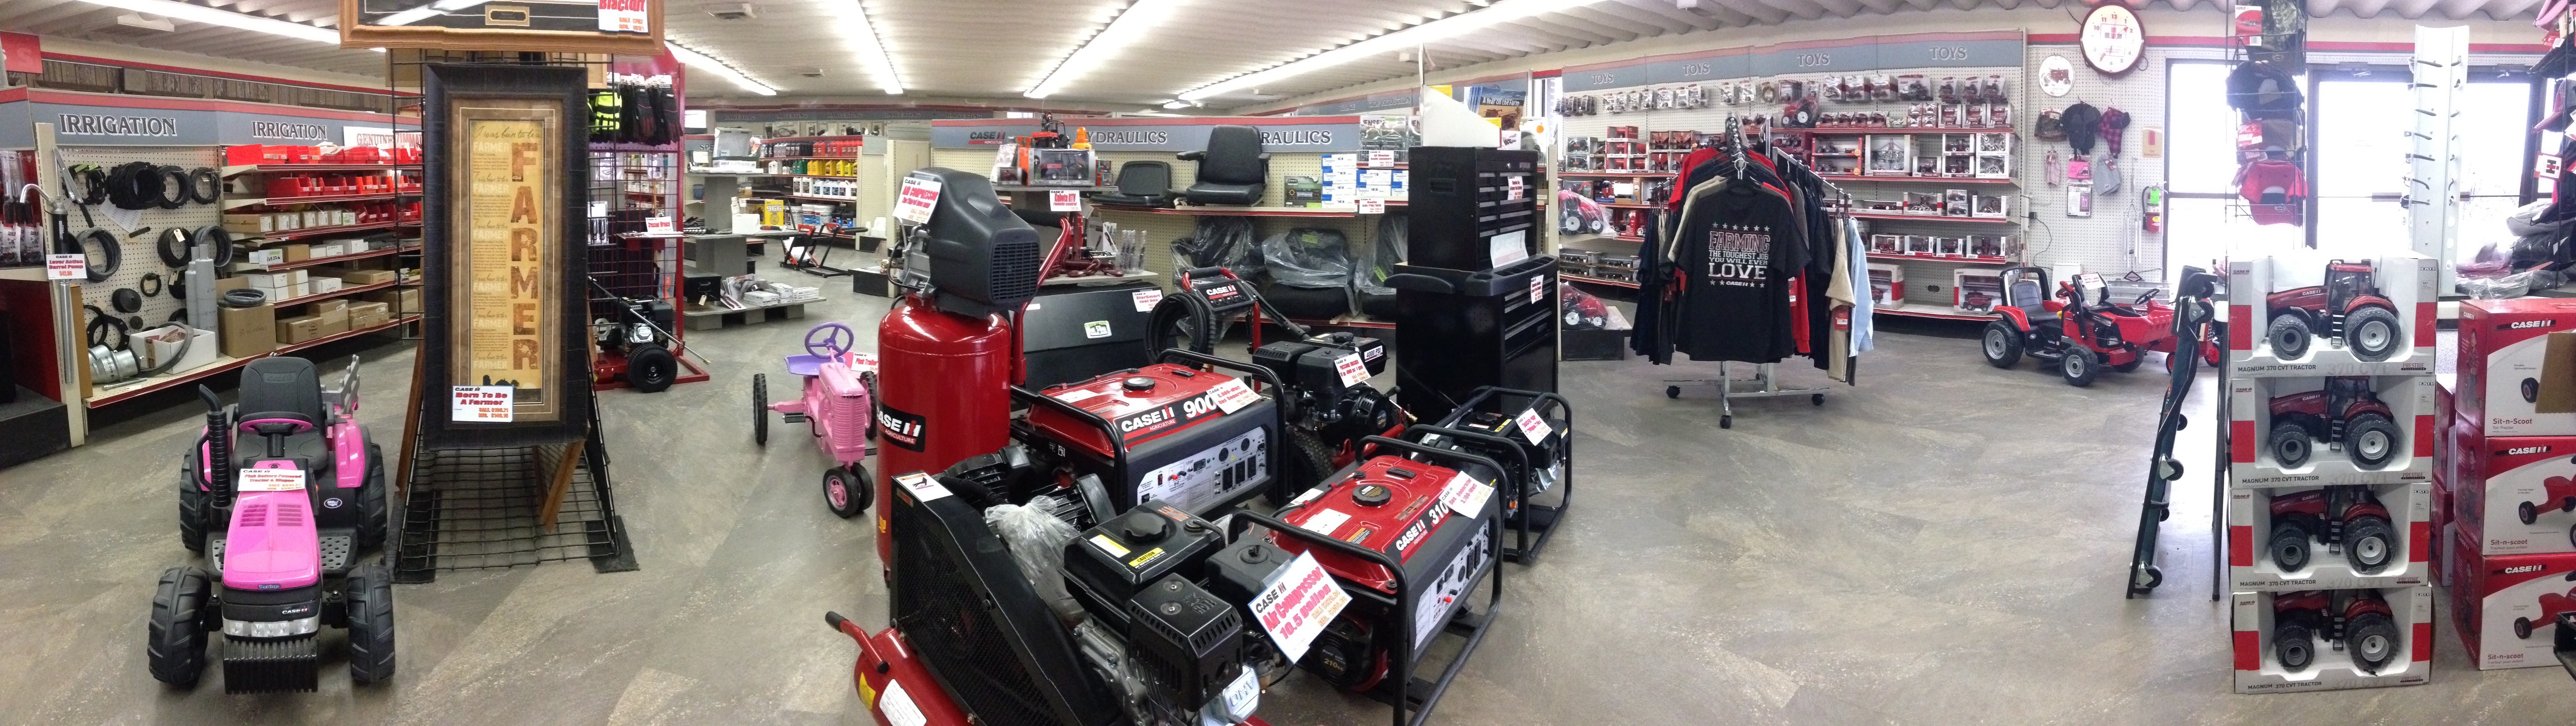 Nebraska Equipment Inc. Store